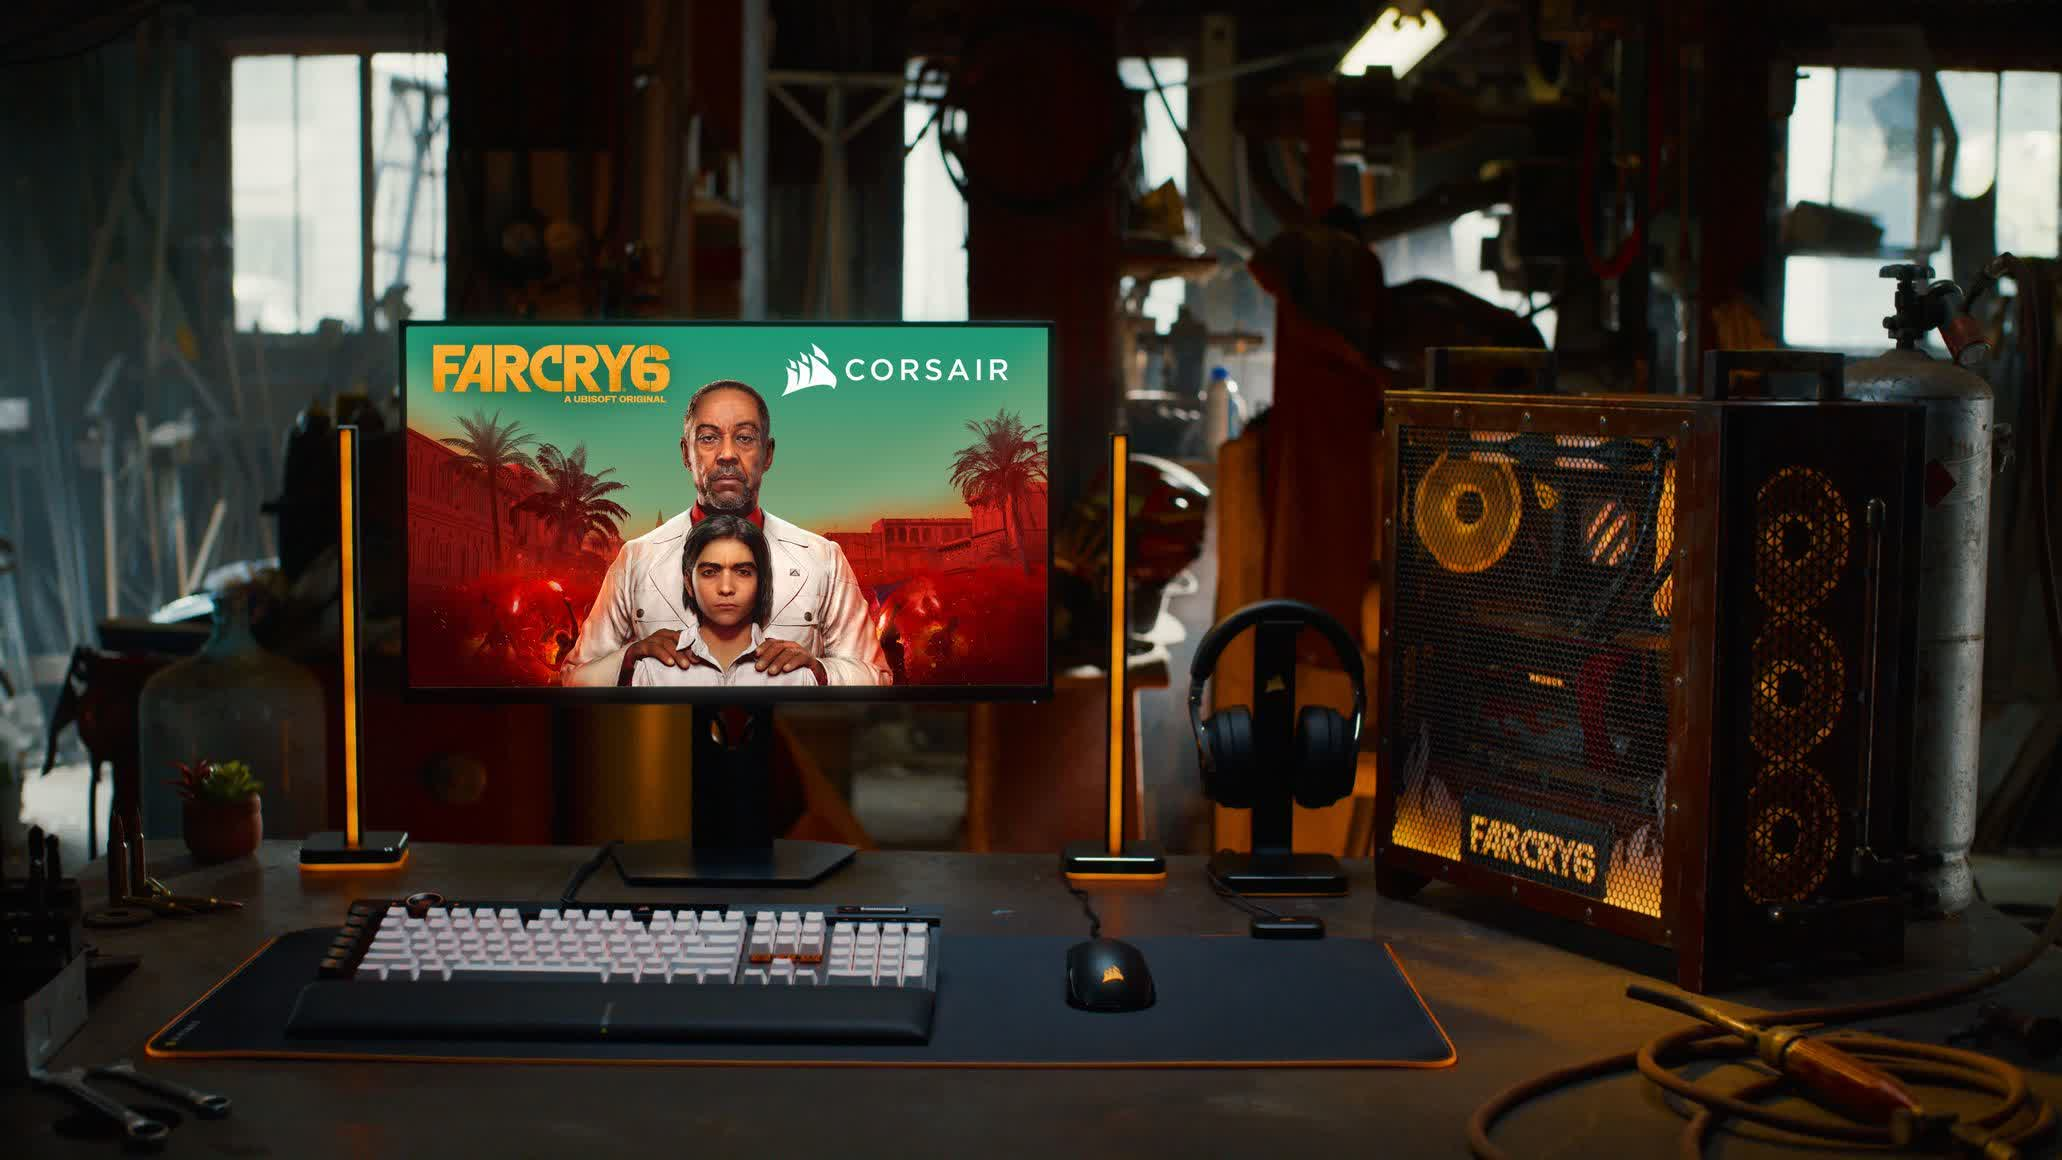 Corsair partners with Ubisoft for Far Cry 6 immersive experience, AMD-powered PC giveaway